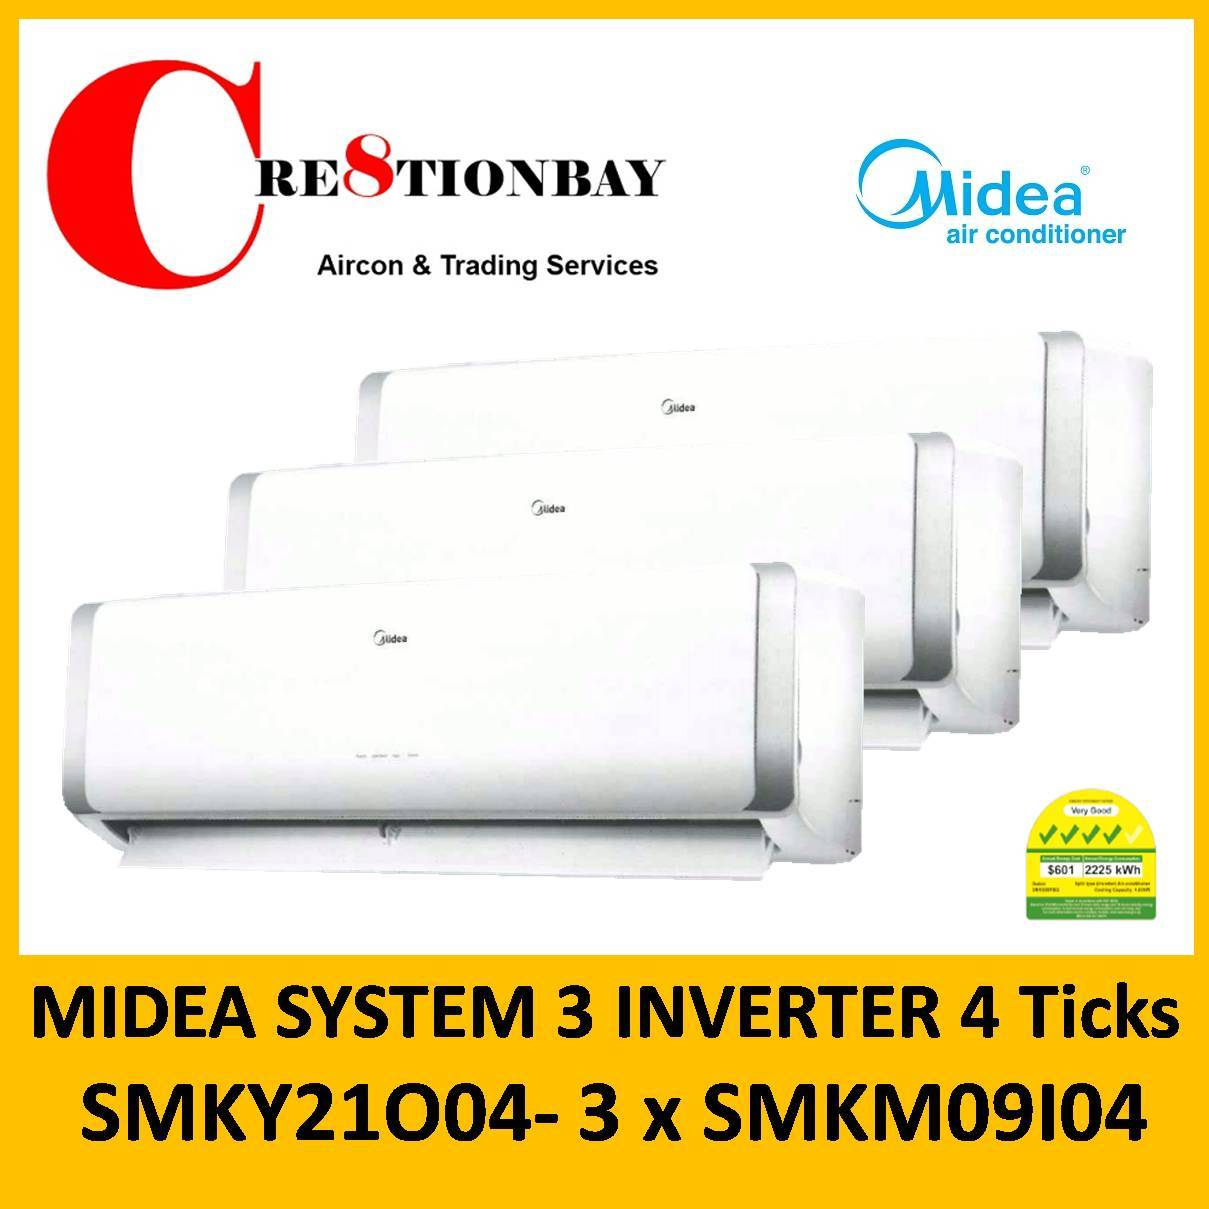 Midealimited 5 Sets Offer Midea System 3 Inverter Aircon 4 Ticks Smky21 X Smkm 09 Air Conditioner Electronical Circuit Board Buy Fit To Viewer